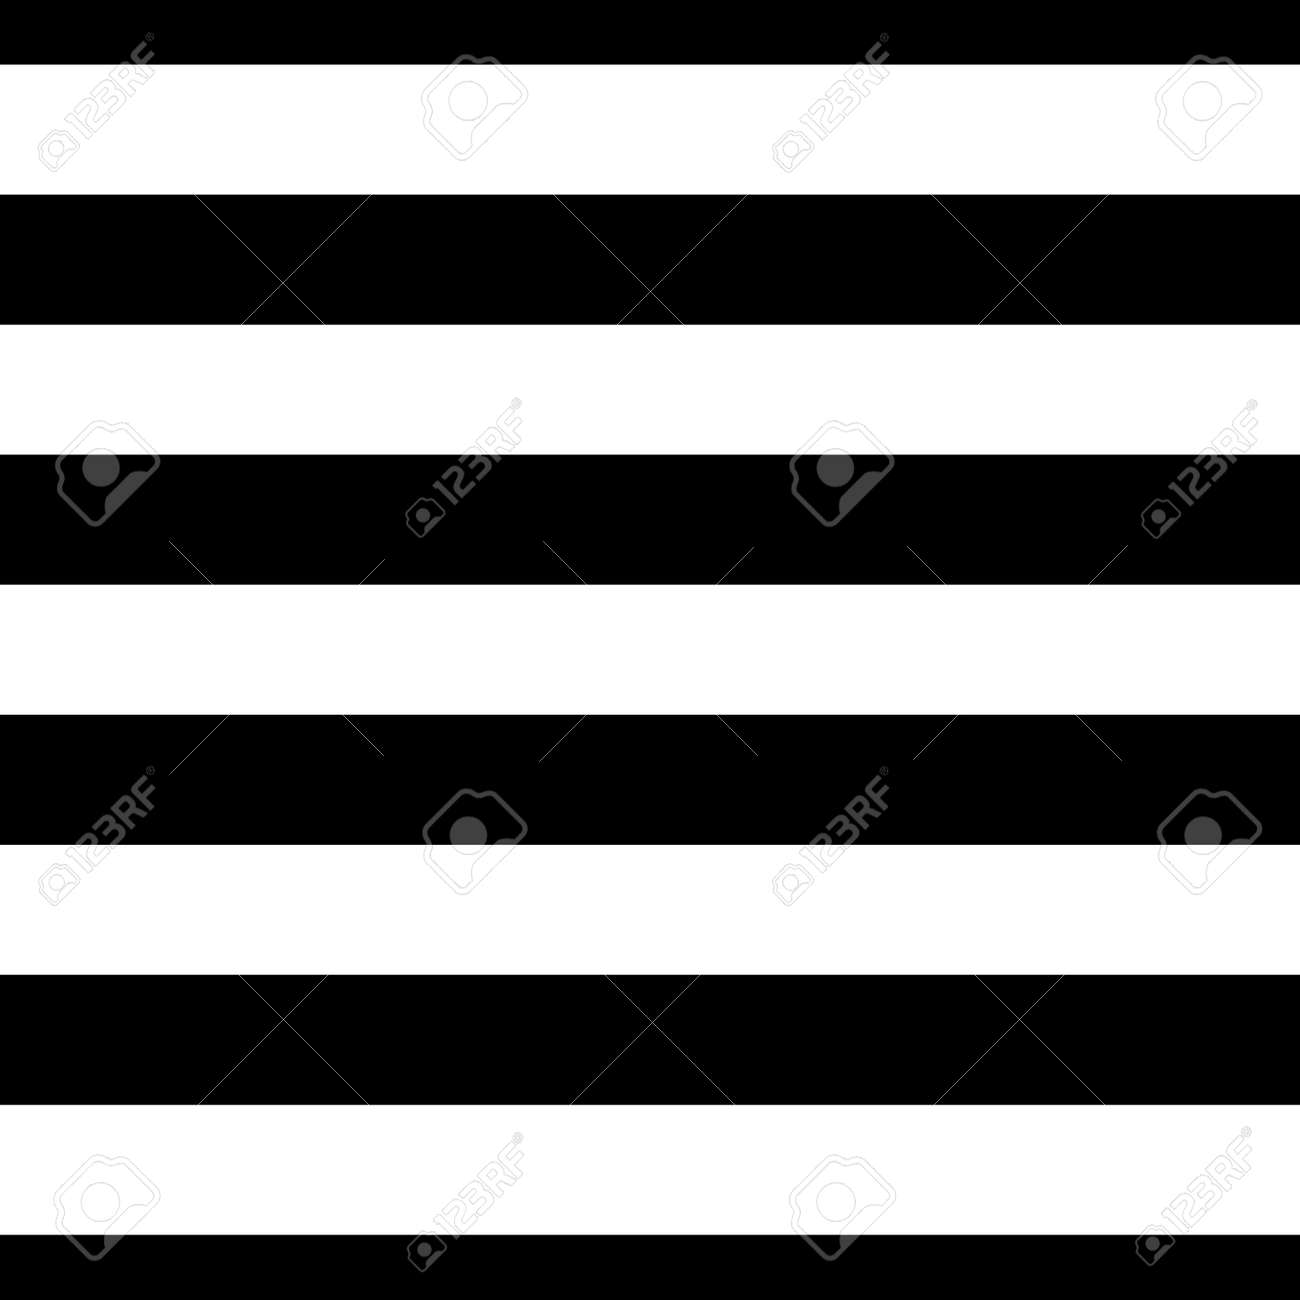 Striped seamless pattern with horizontal line. Black and white fashion graphics design. Strict graphic background. Retro style. Template for wallpaper, wrapping, textile, fabric. Illustration. Stock Photo - 73498651